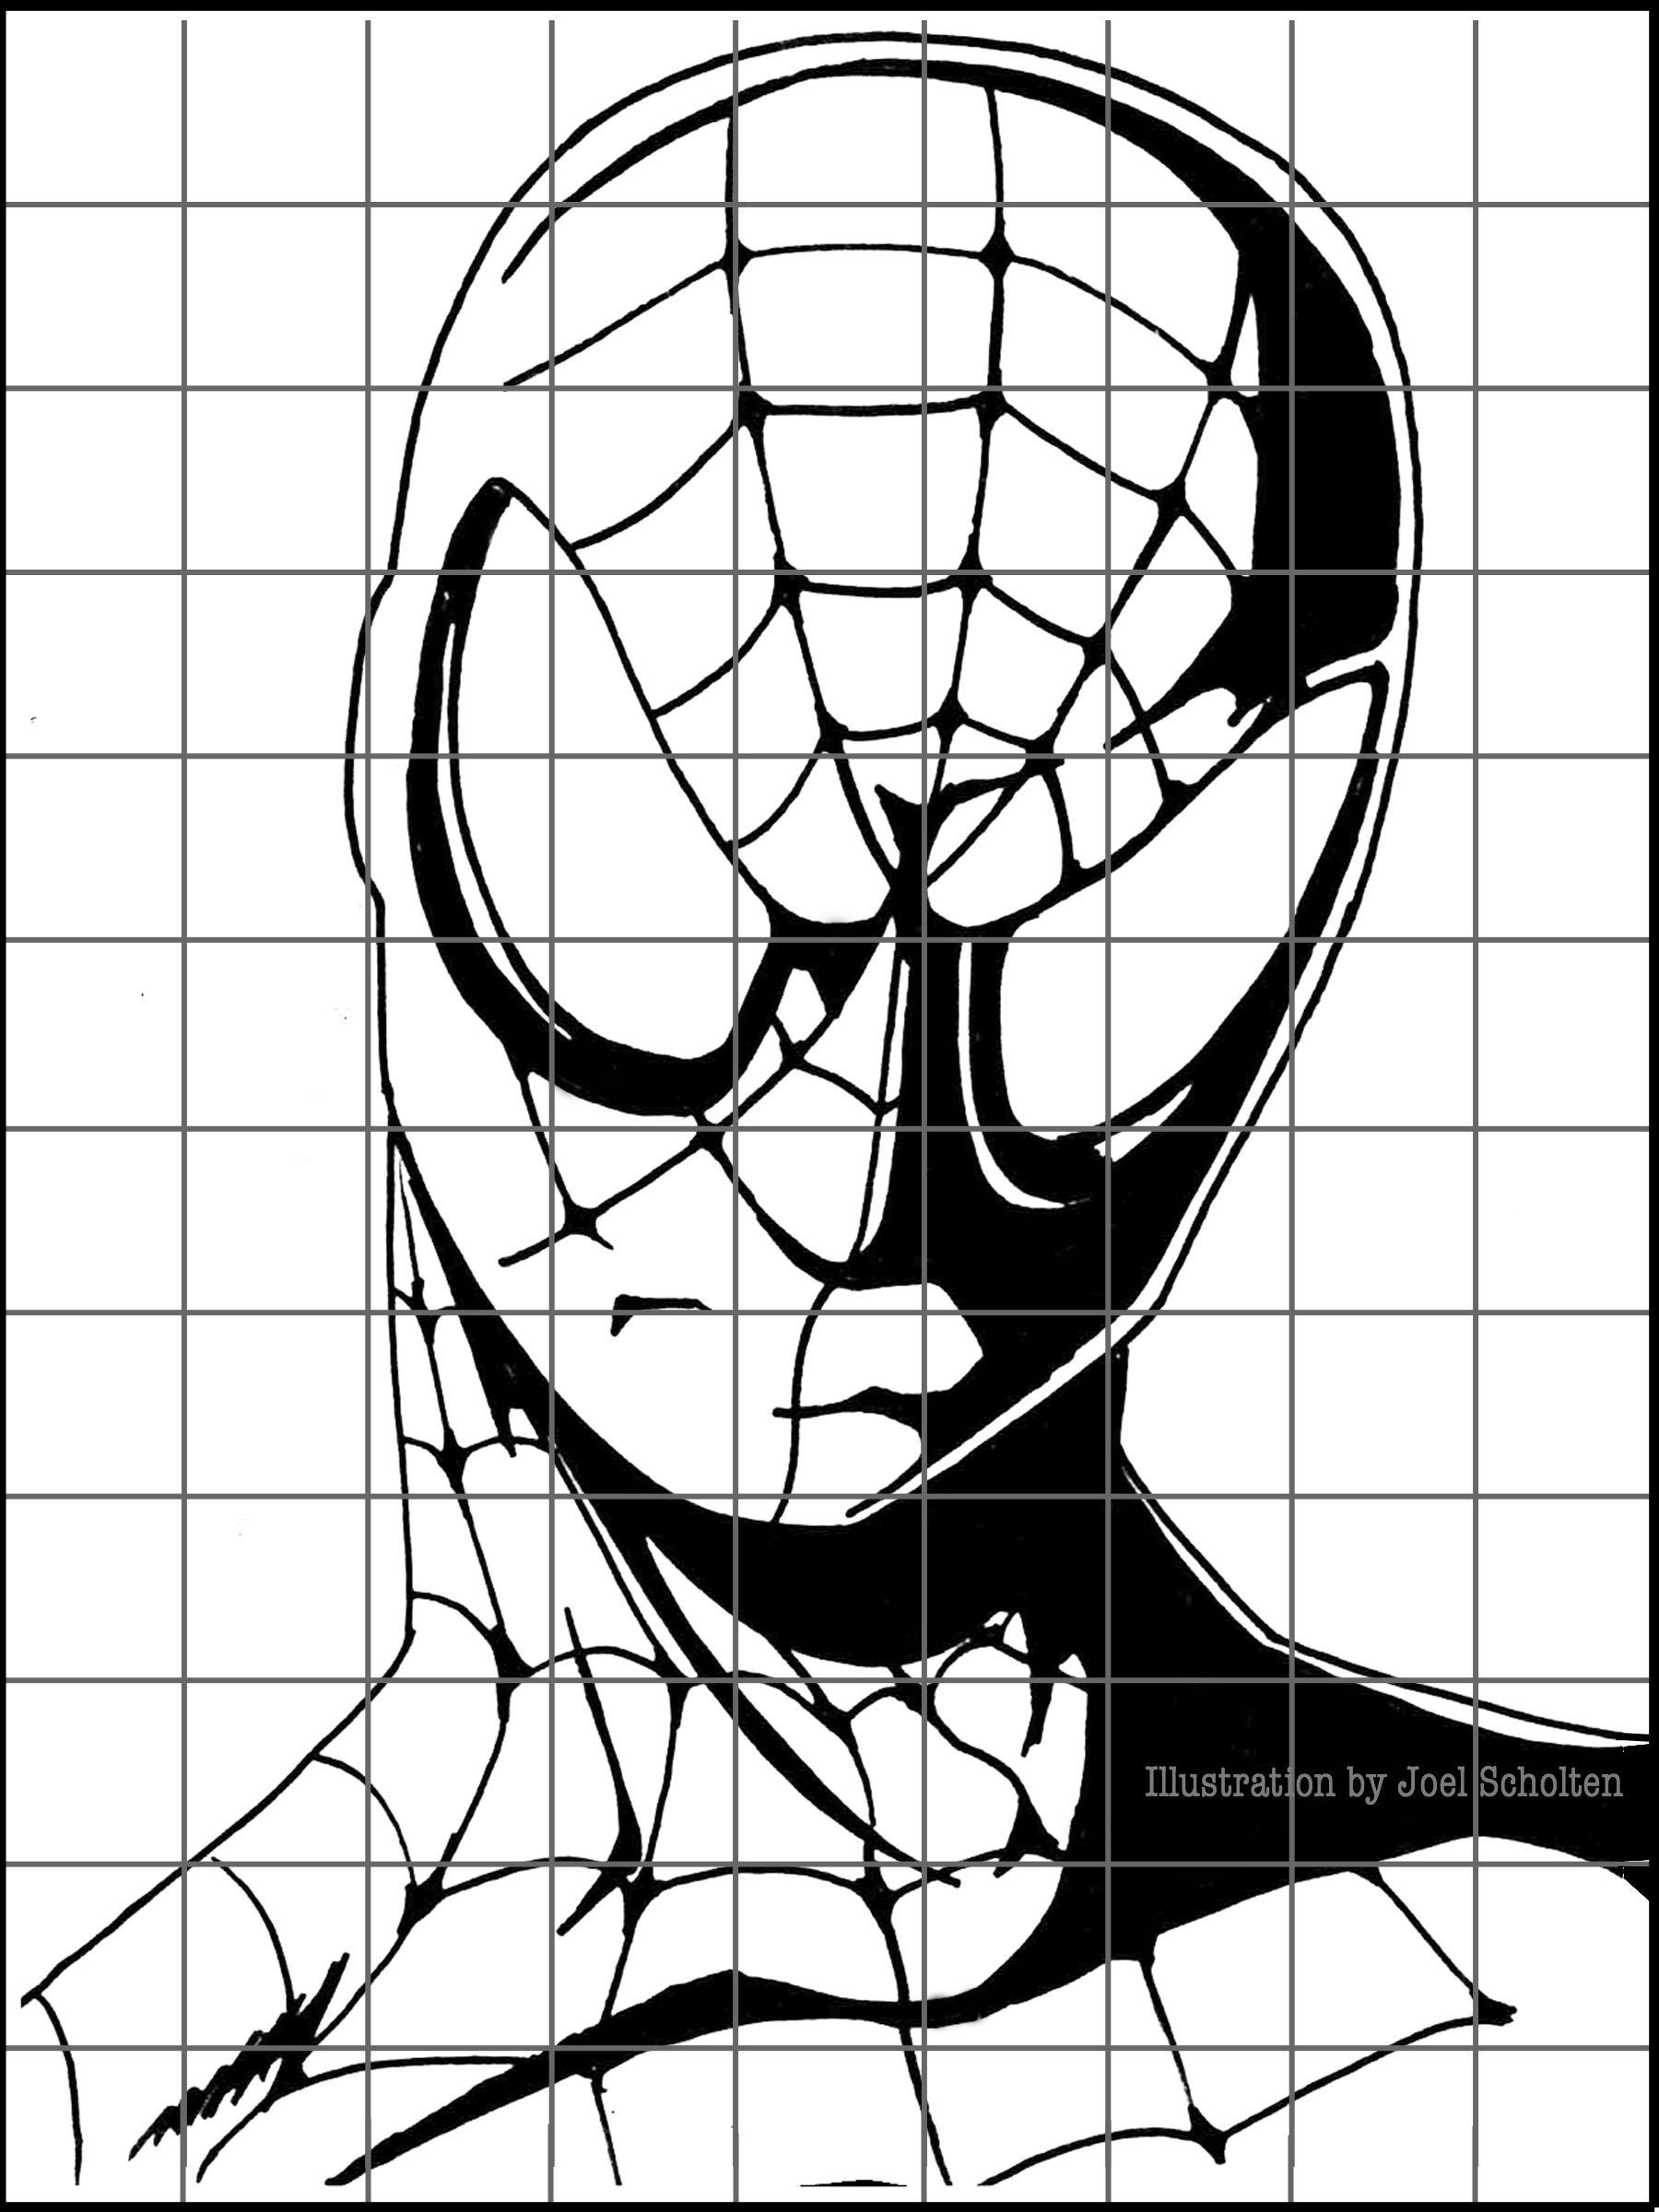 Drawing Superheroes Is A Great Way To Keep 6th Grade